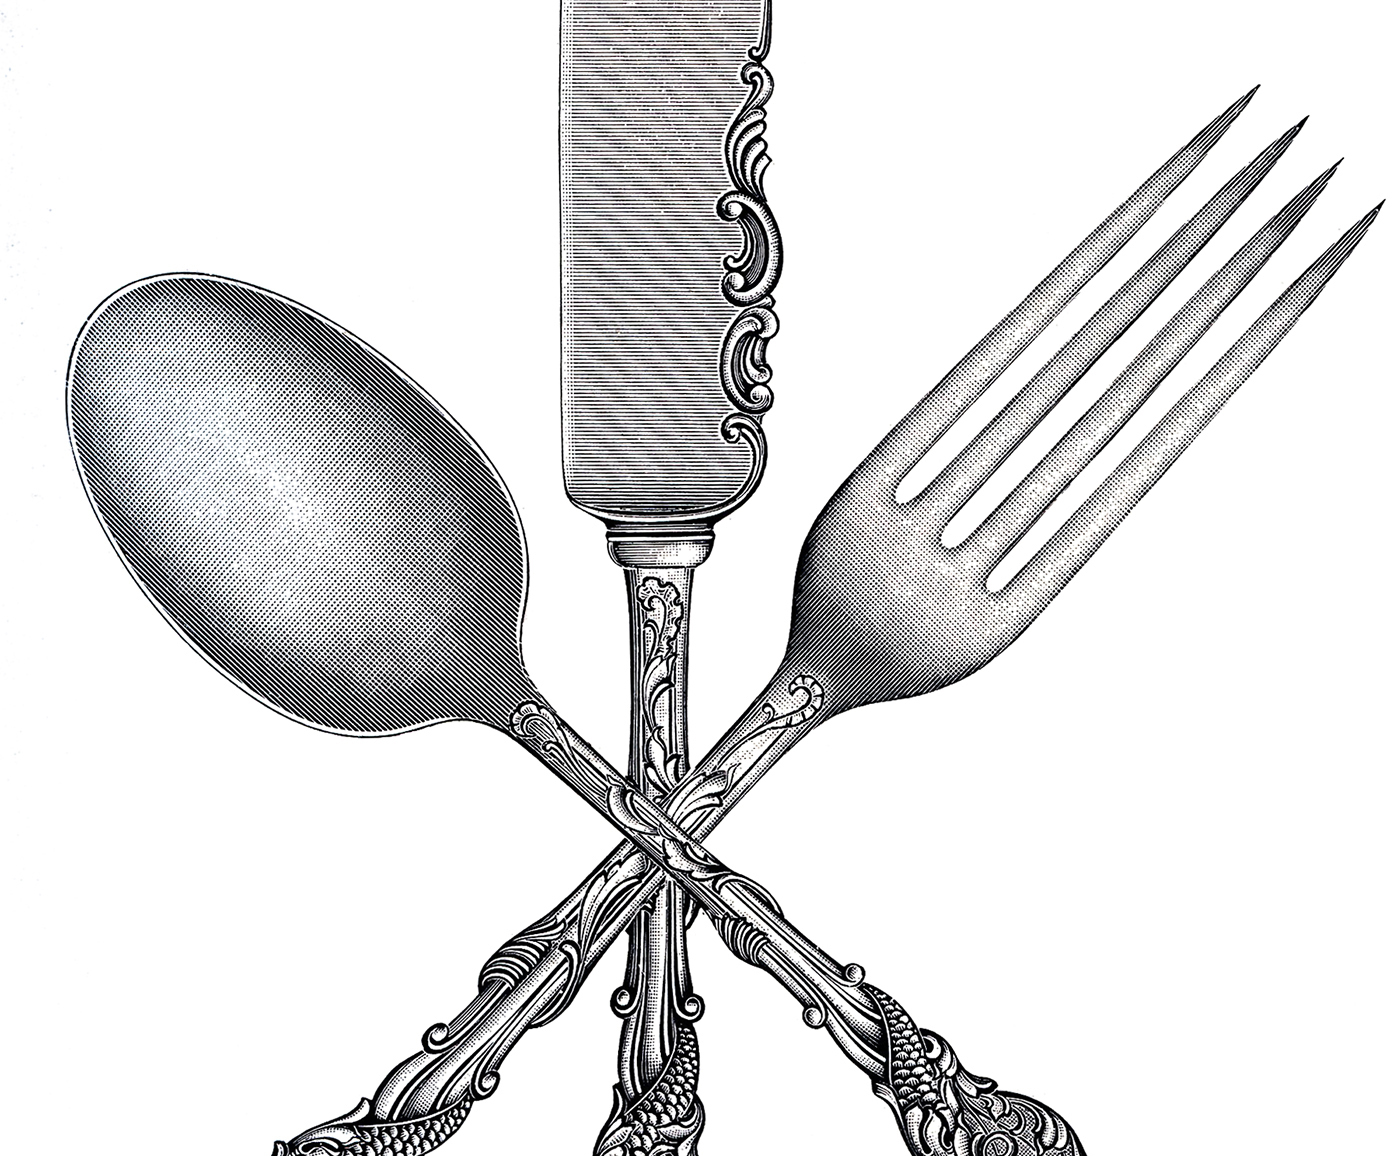 Free Fork Spoon Knife Clip Art - The Graphics Fairy: thegraphicsfairy.com/free-fork-spoon-knife-clip-art